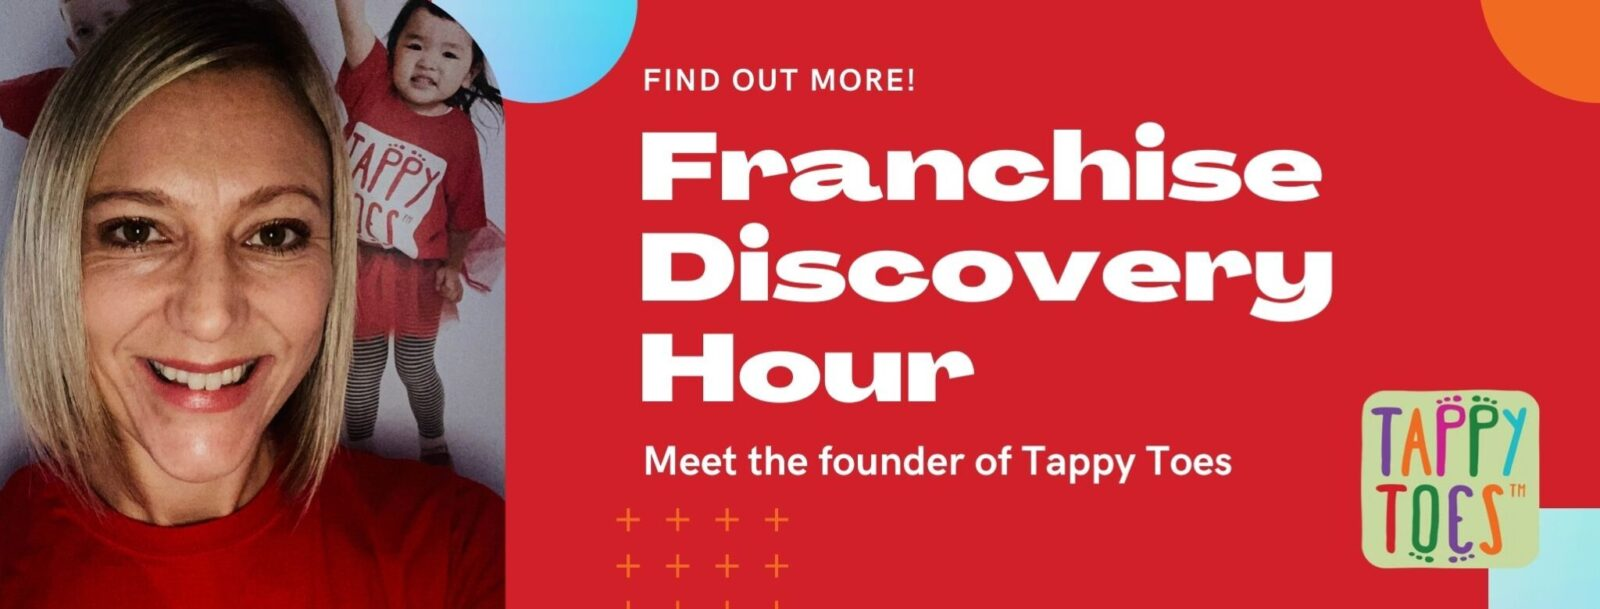 Franchise discovery Hour